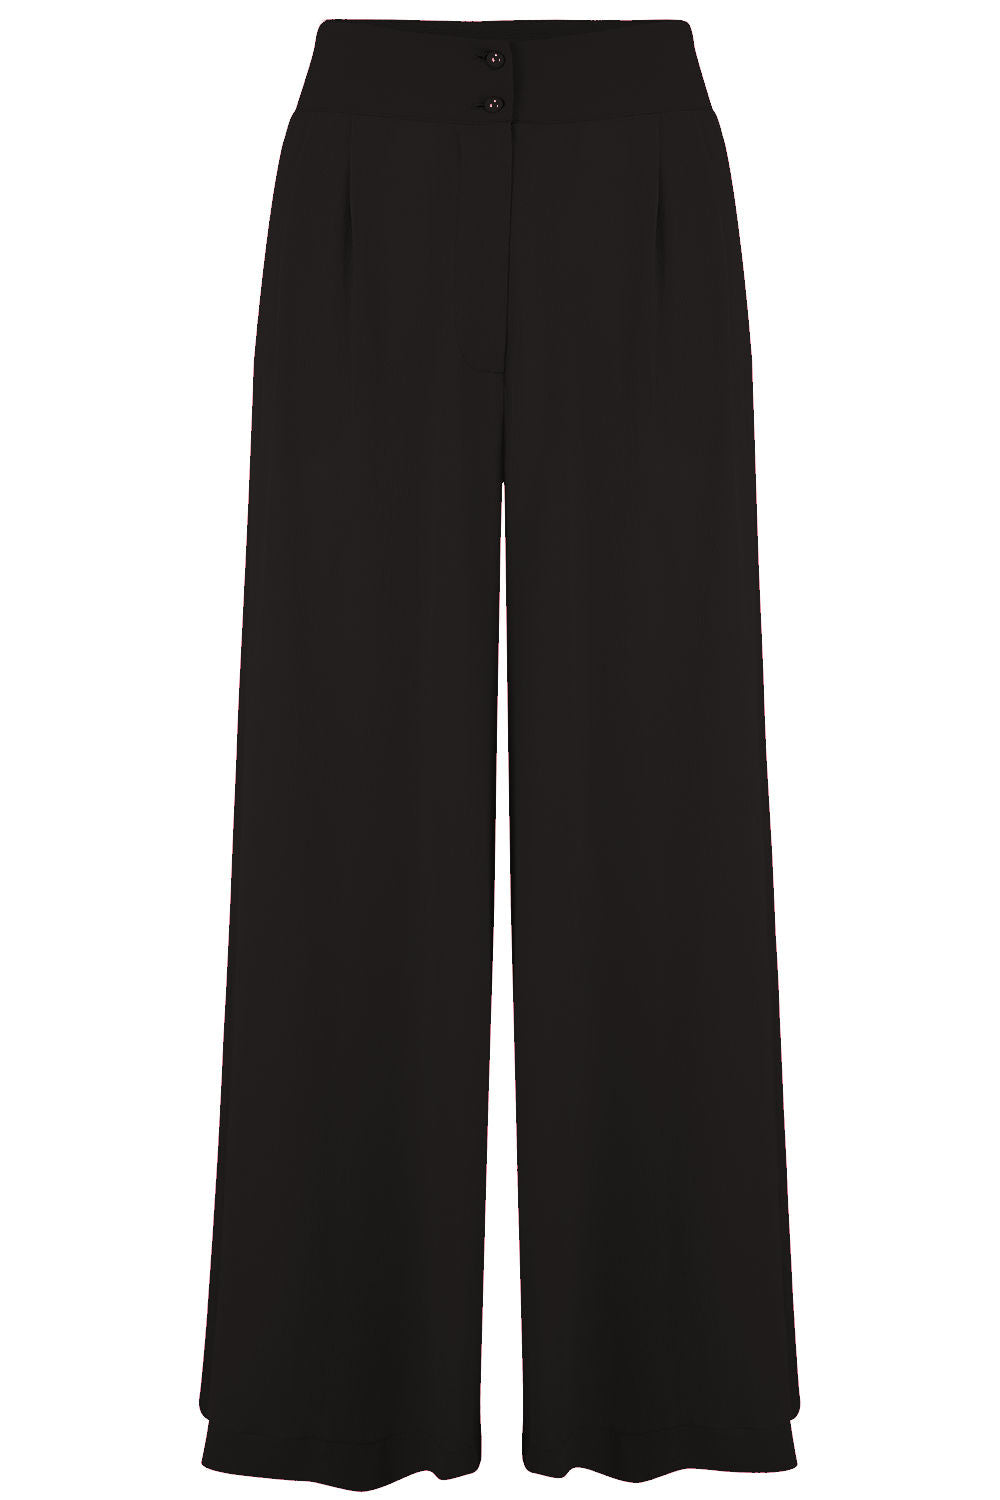 1950s Pants History for Women The Sophia Plazzo Wide Leg Trousers in Black Easy To Wear Vintage Inspired Style £39.00 AT vintagedancer.com